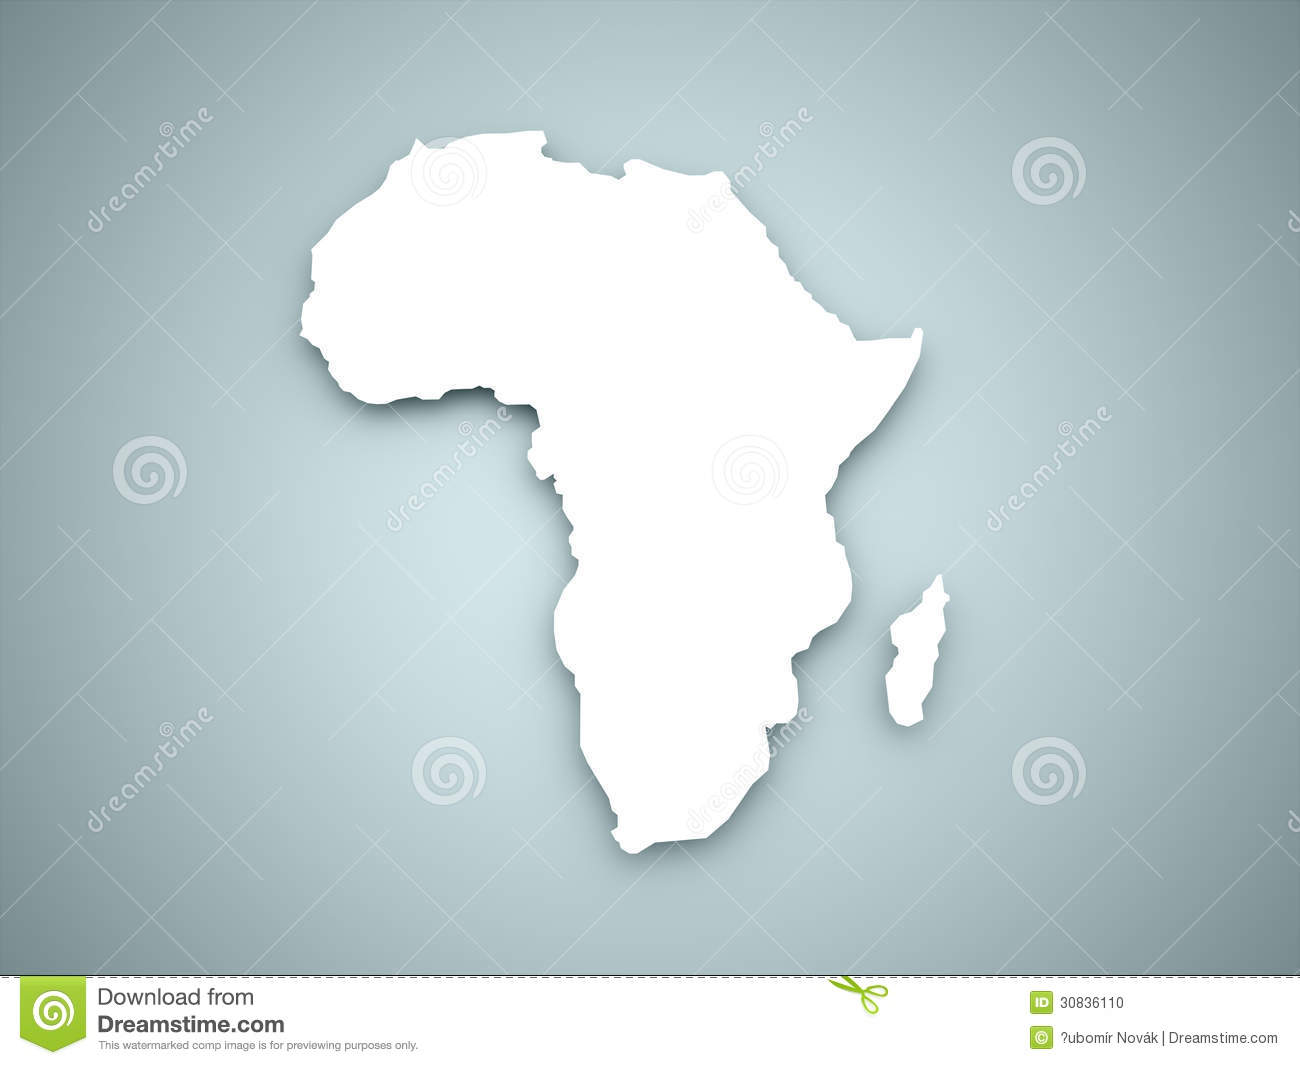 Africa Continent Stock Photo - Image: 30836110